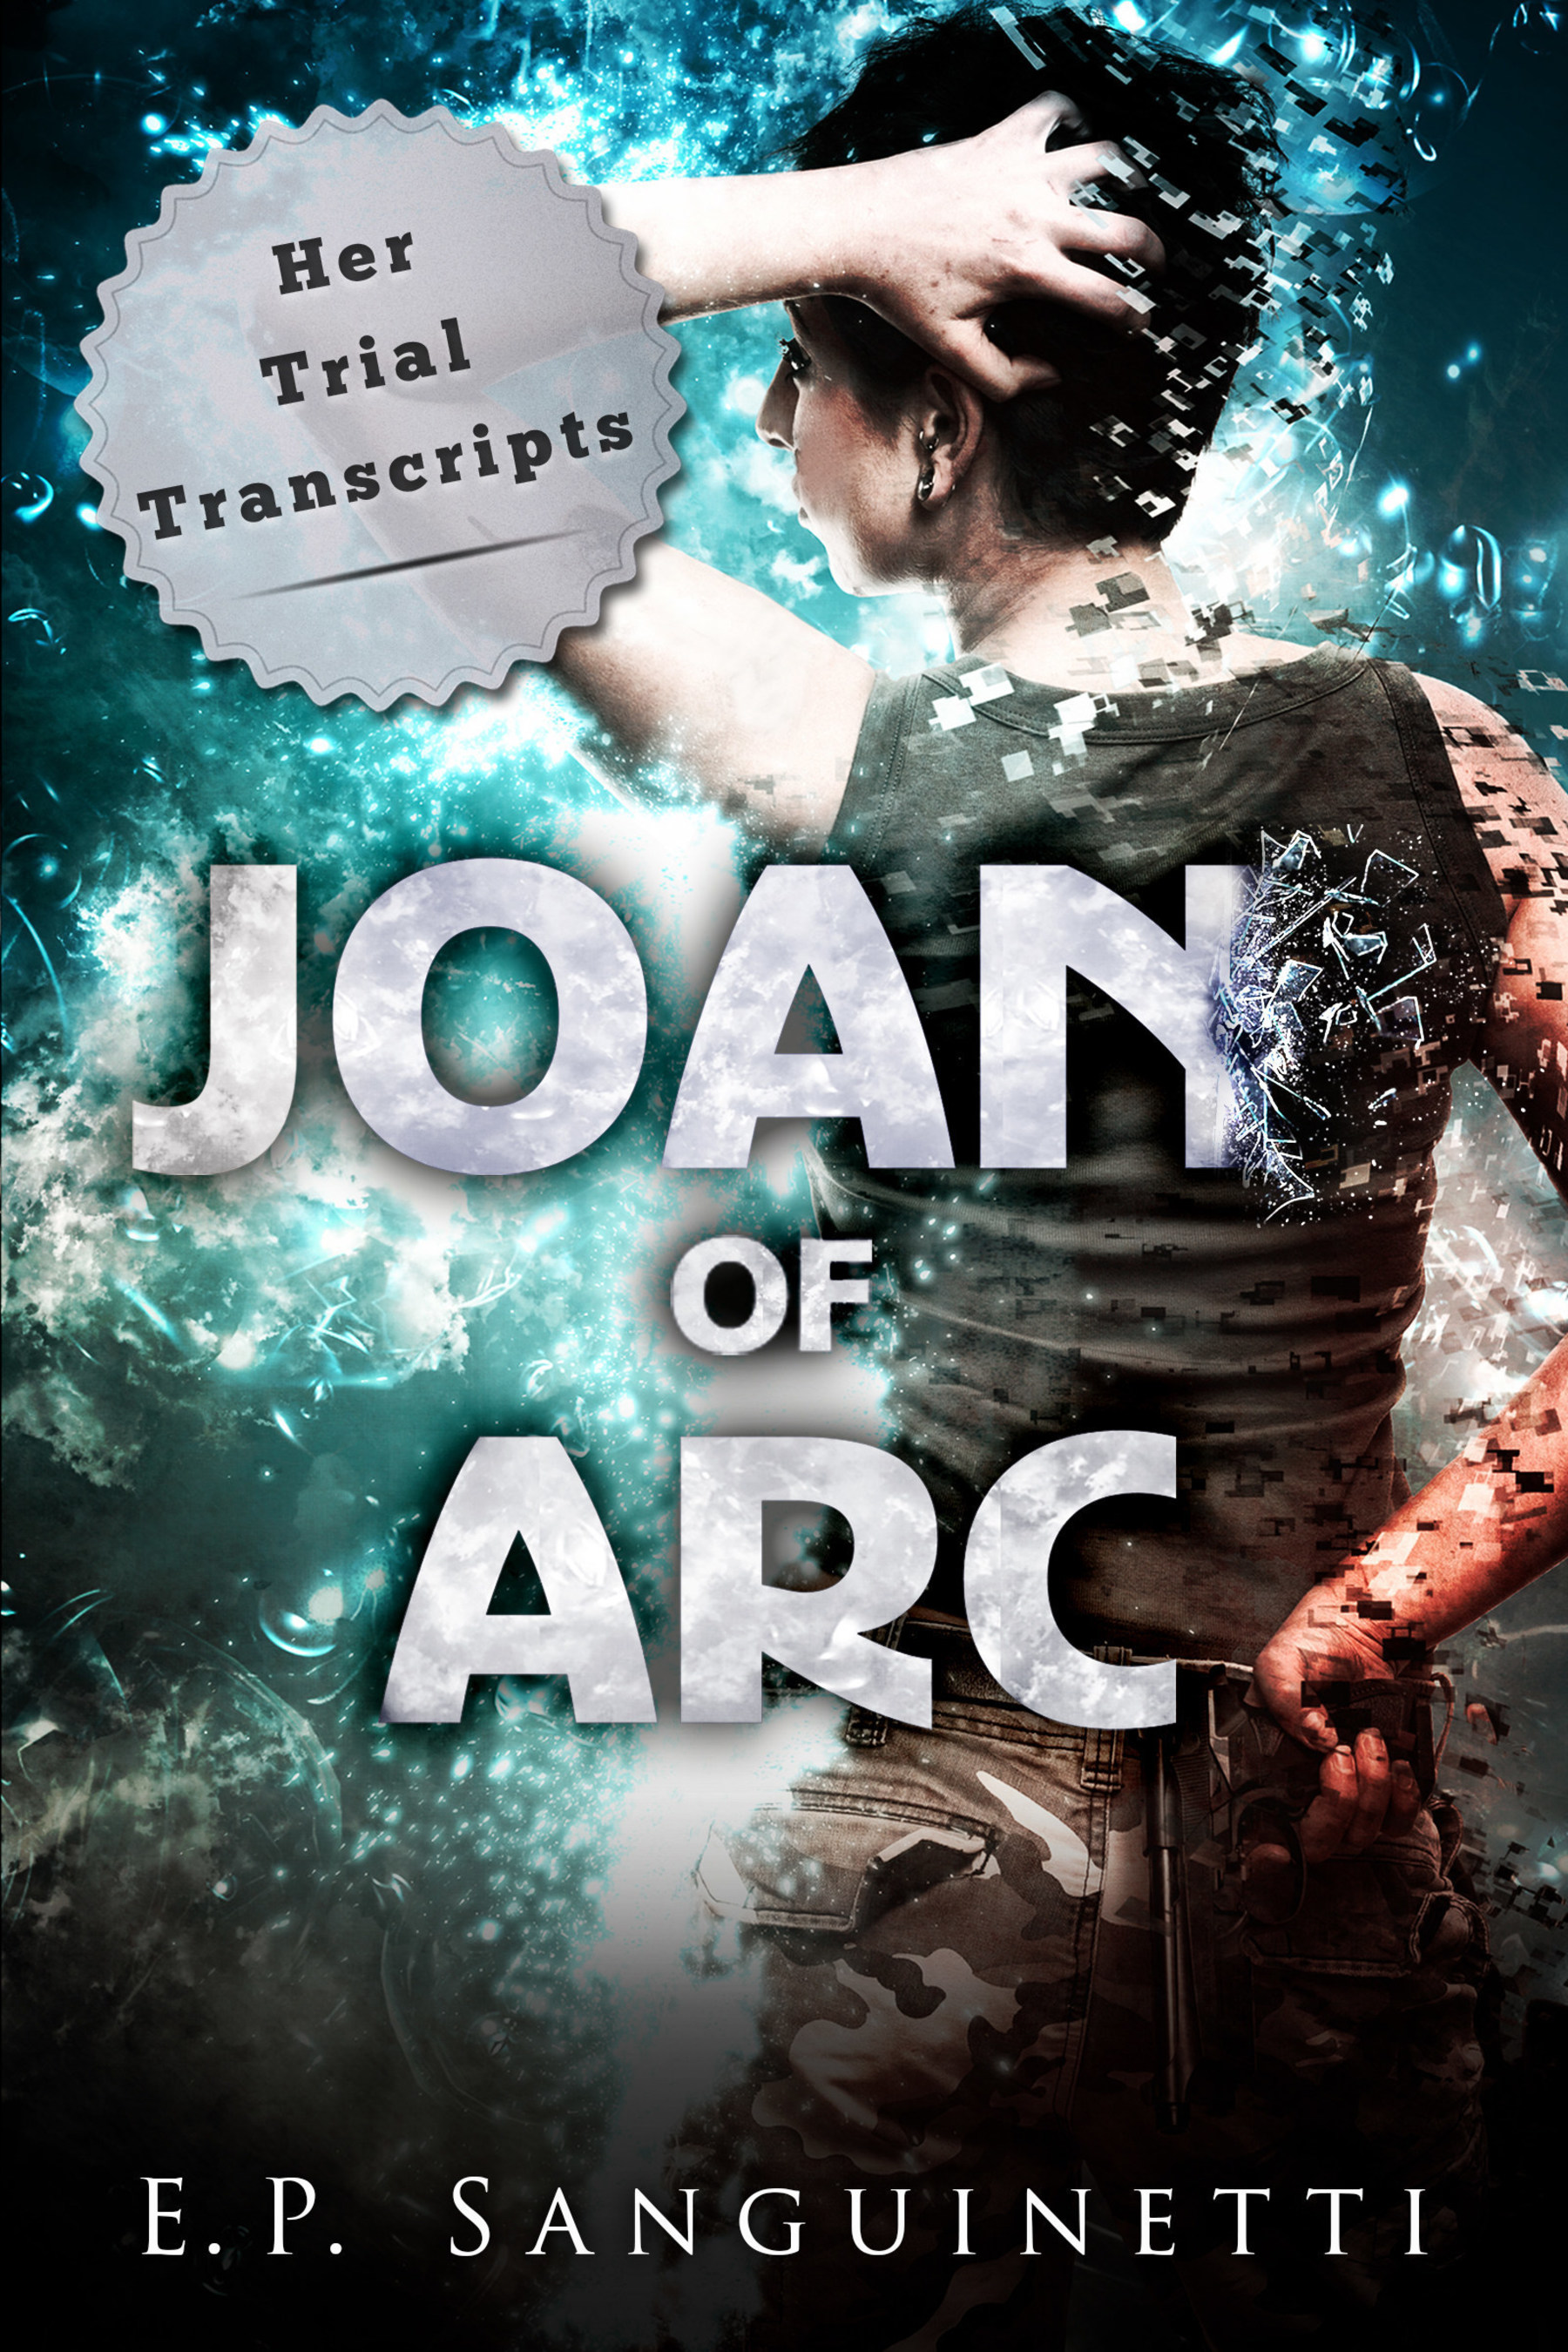 Joan of Arc: Her Trial Transcripts, by Emilia P. Sanguinetti